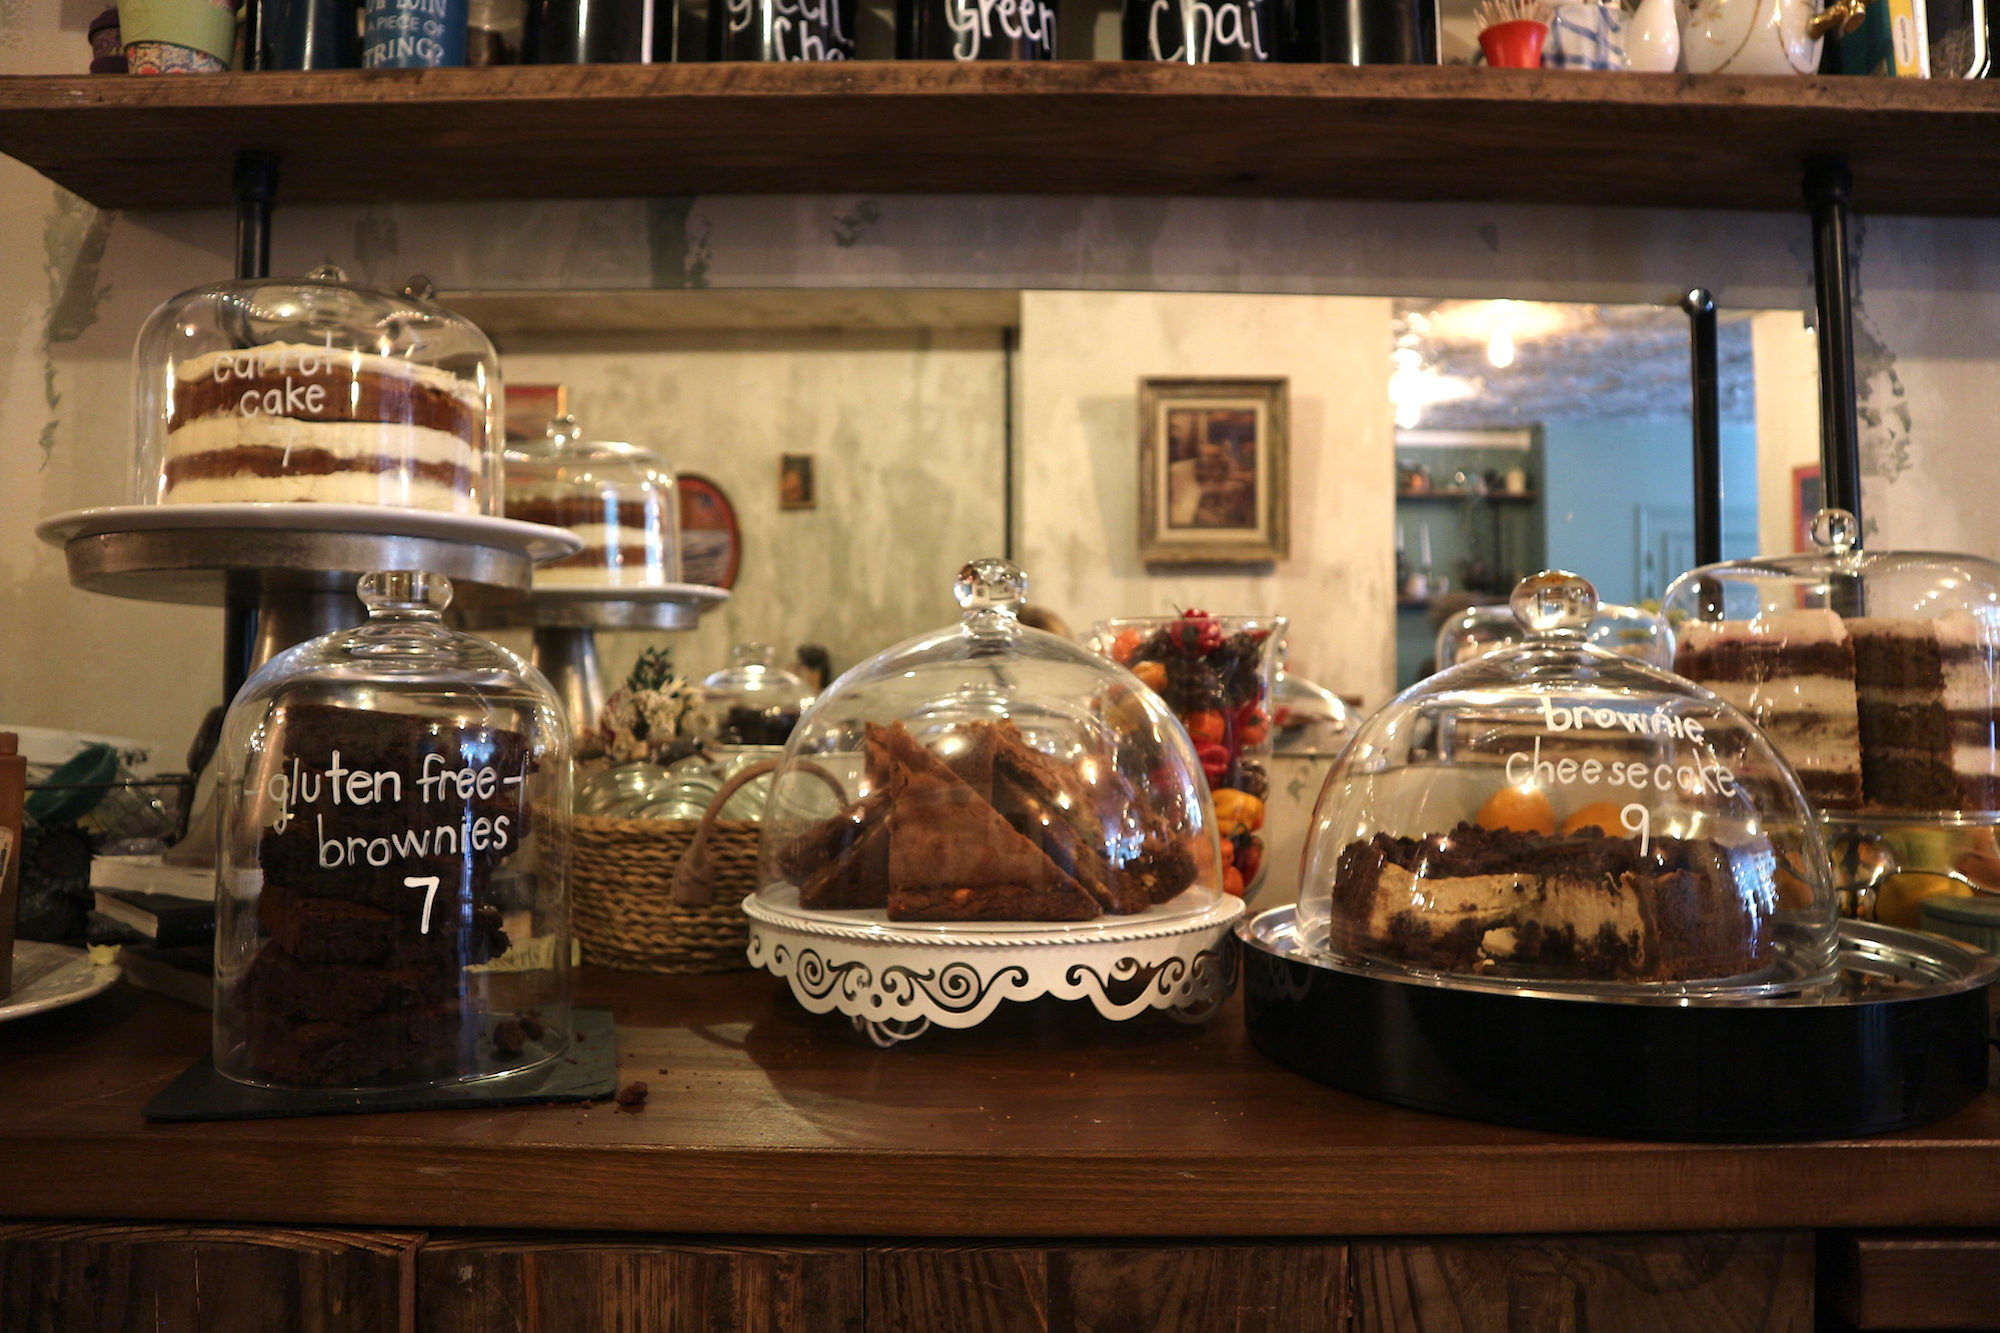 One of our favorite coffee shops in Paris, Treize au Jardin has delicious gluten-free homemade cakes hiding under glass bell jars.